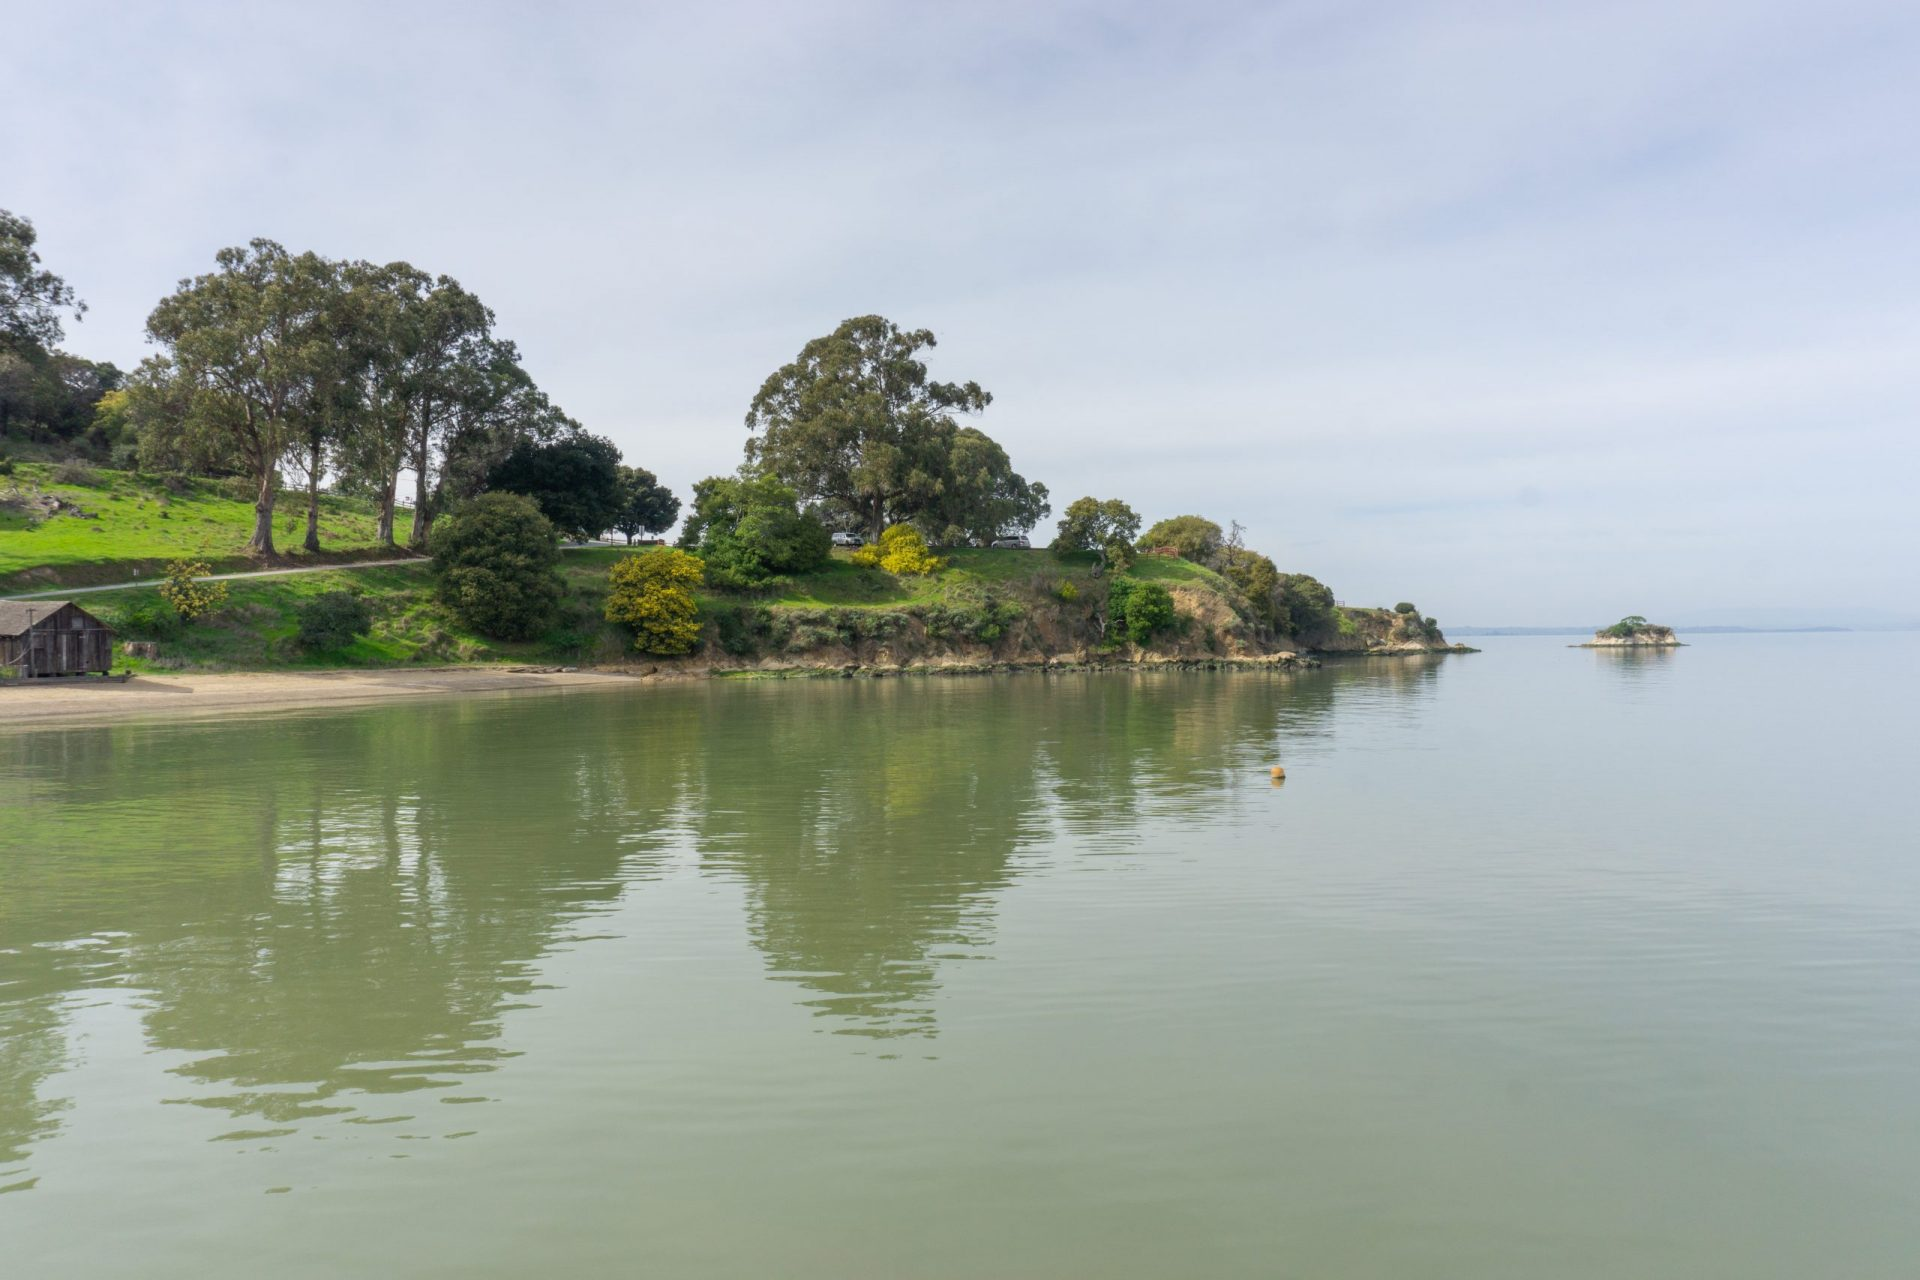 green trees and grassy hills descending into bay water